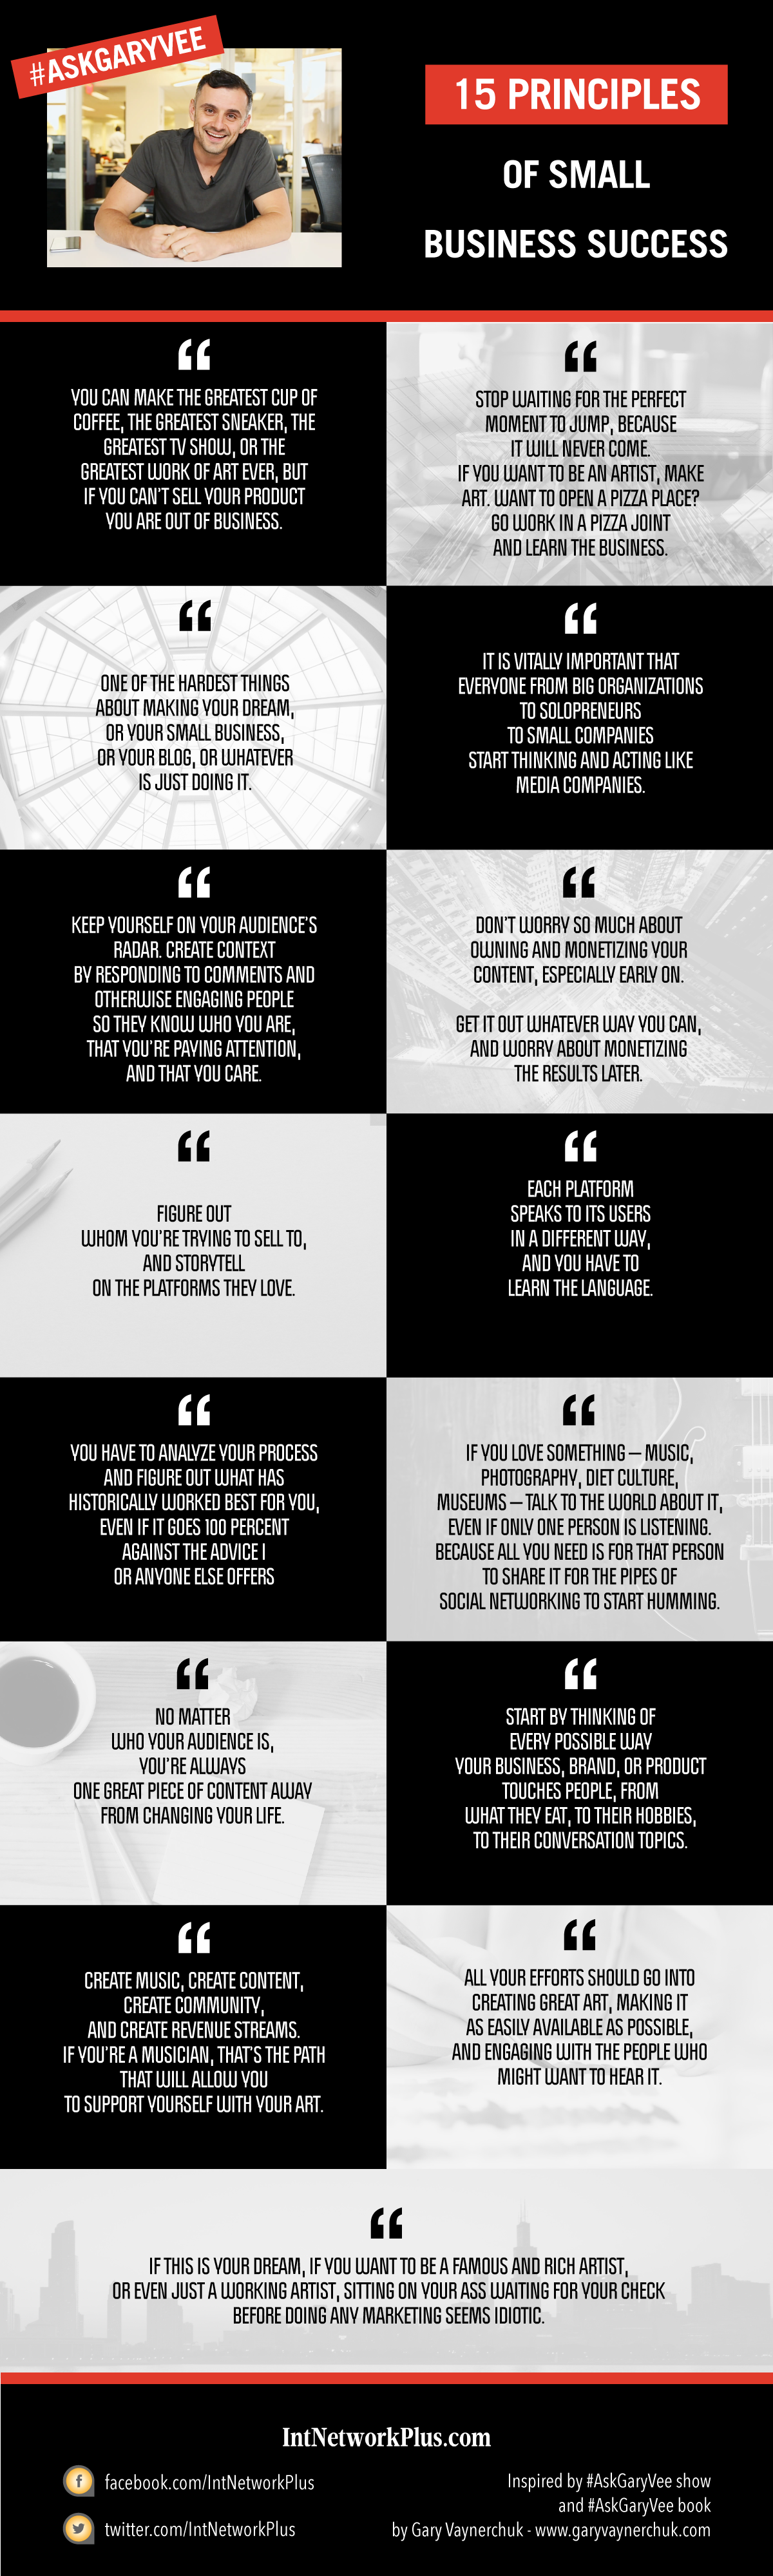 It can be tough to build a small business if you are starting from the nothing. Here are 15 small business tips on being successful as a creative entrepreneur from Gary Vaynerchuk, author of the #AskGaryVee show. #business #smallbusiness #smallbiz #entrepreneur #entrepreneurship #businesstips #marketing #creativeentrepreneur #businessquotes #inspirationalquotes #quotes #quotesoftheday #motivationalquotes #inspiration #motivation